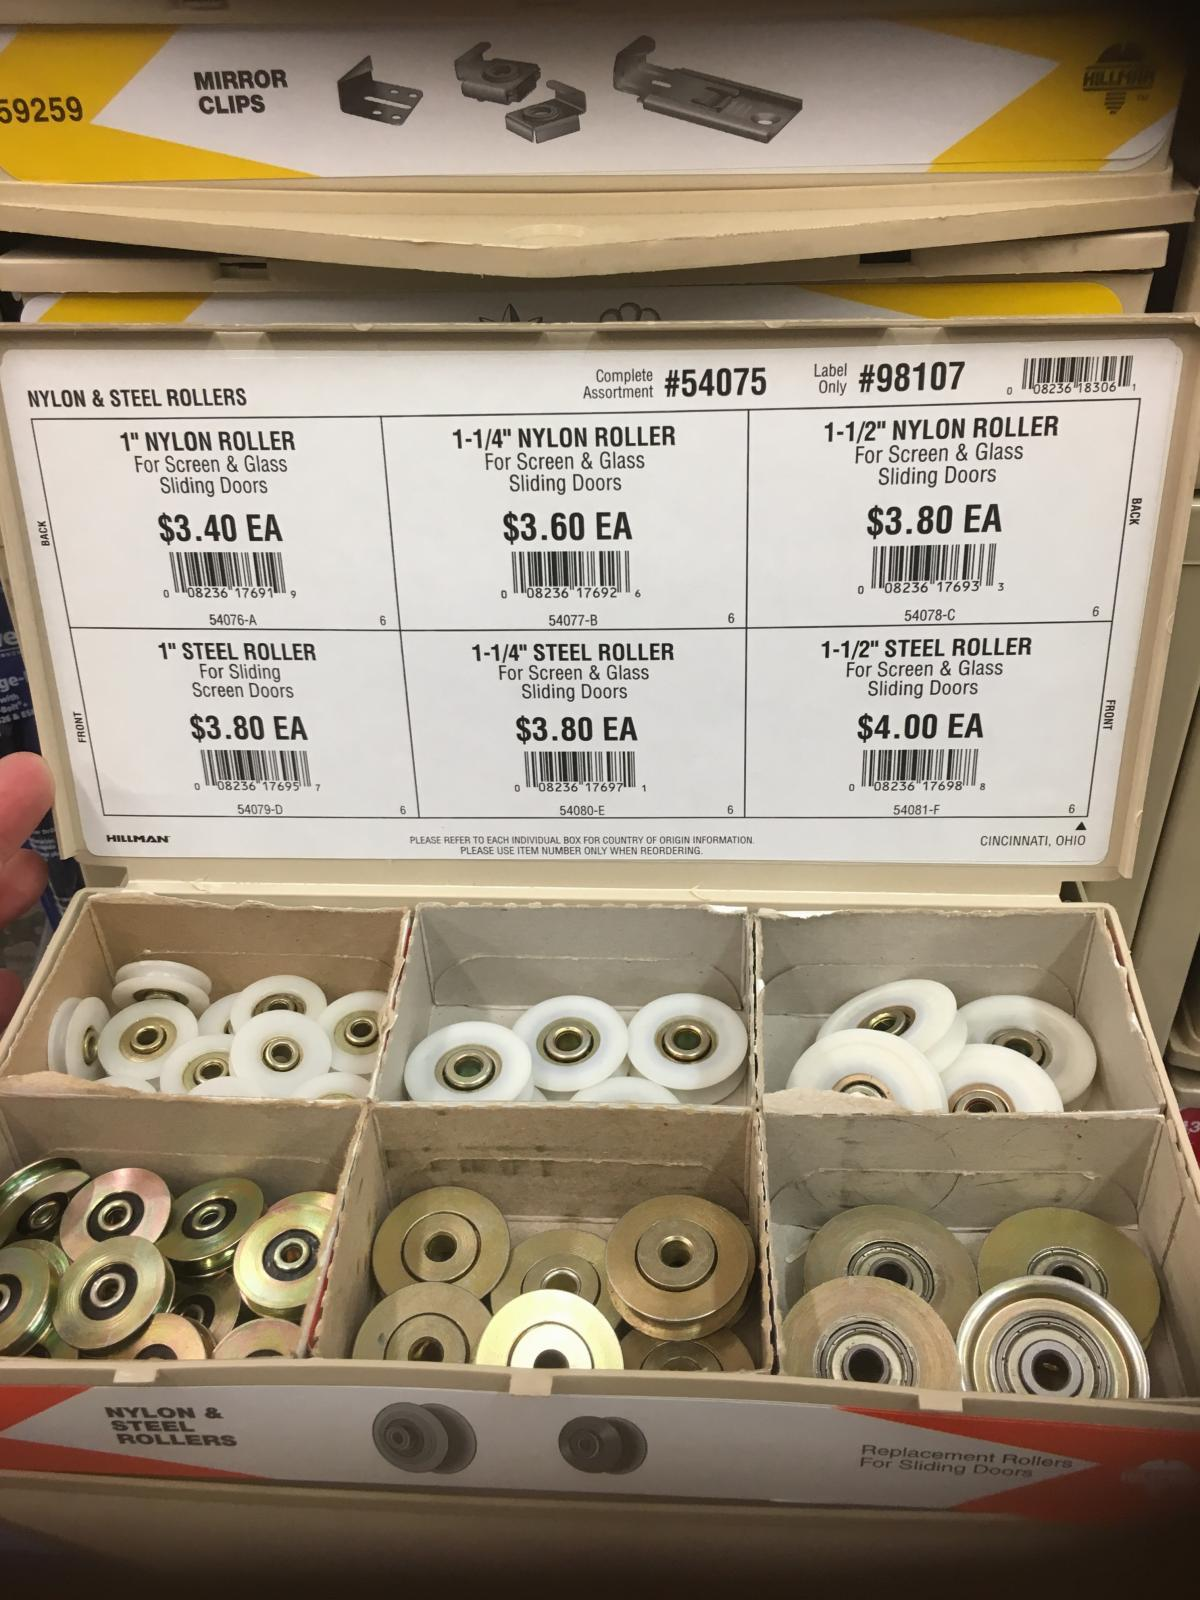 Image may have been reduced in size. Click image to view fullscreen. & TheSamba.com :: Vanagon - View topic - Sliding Door Rollers/Bearings ...